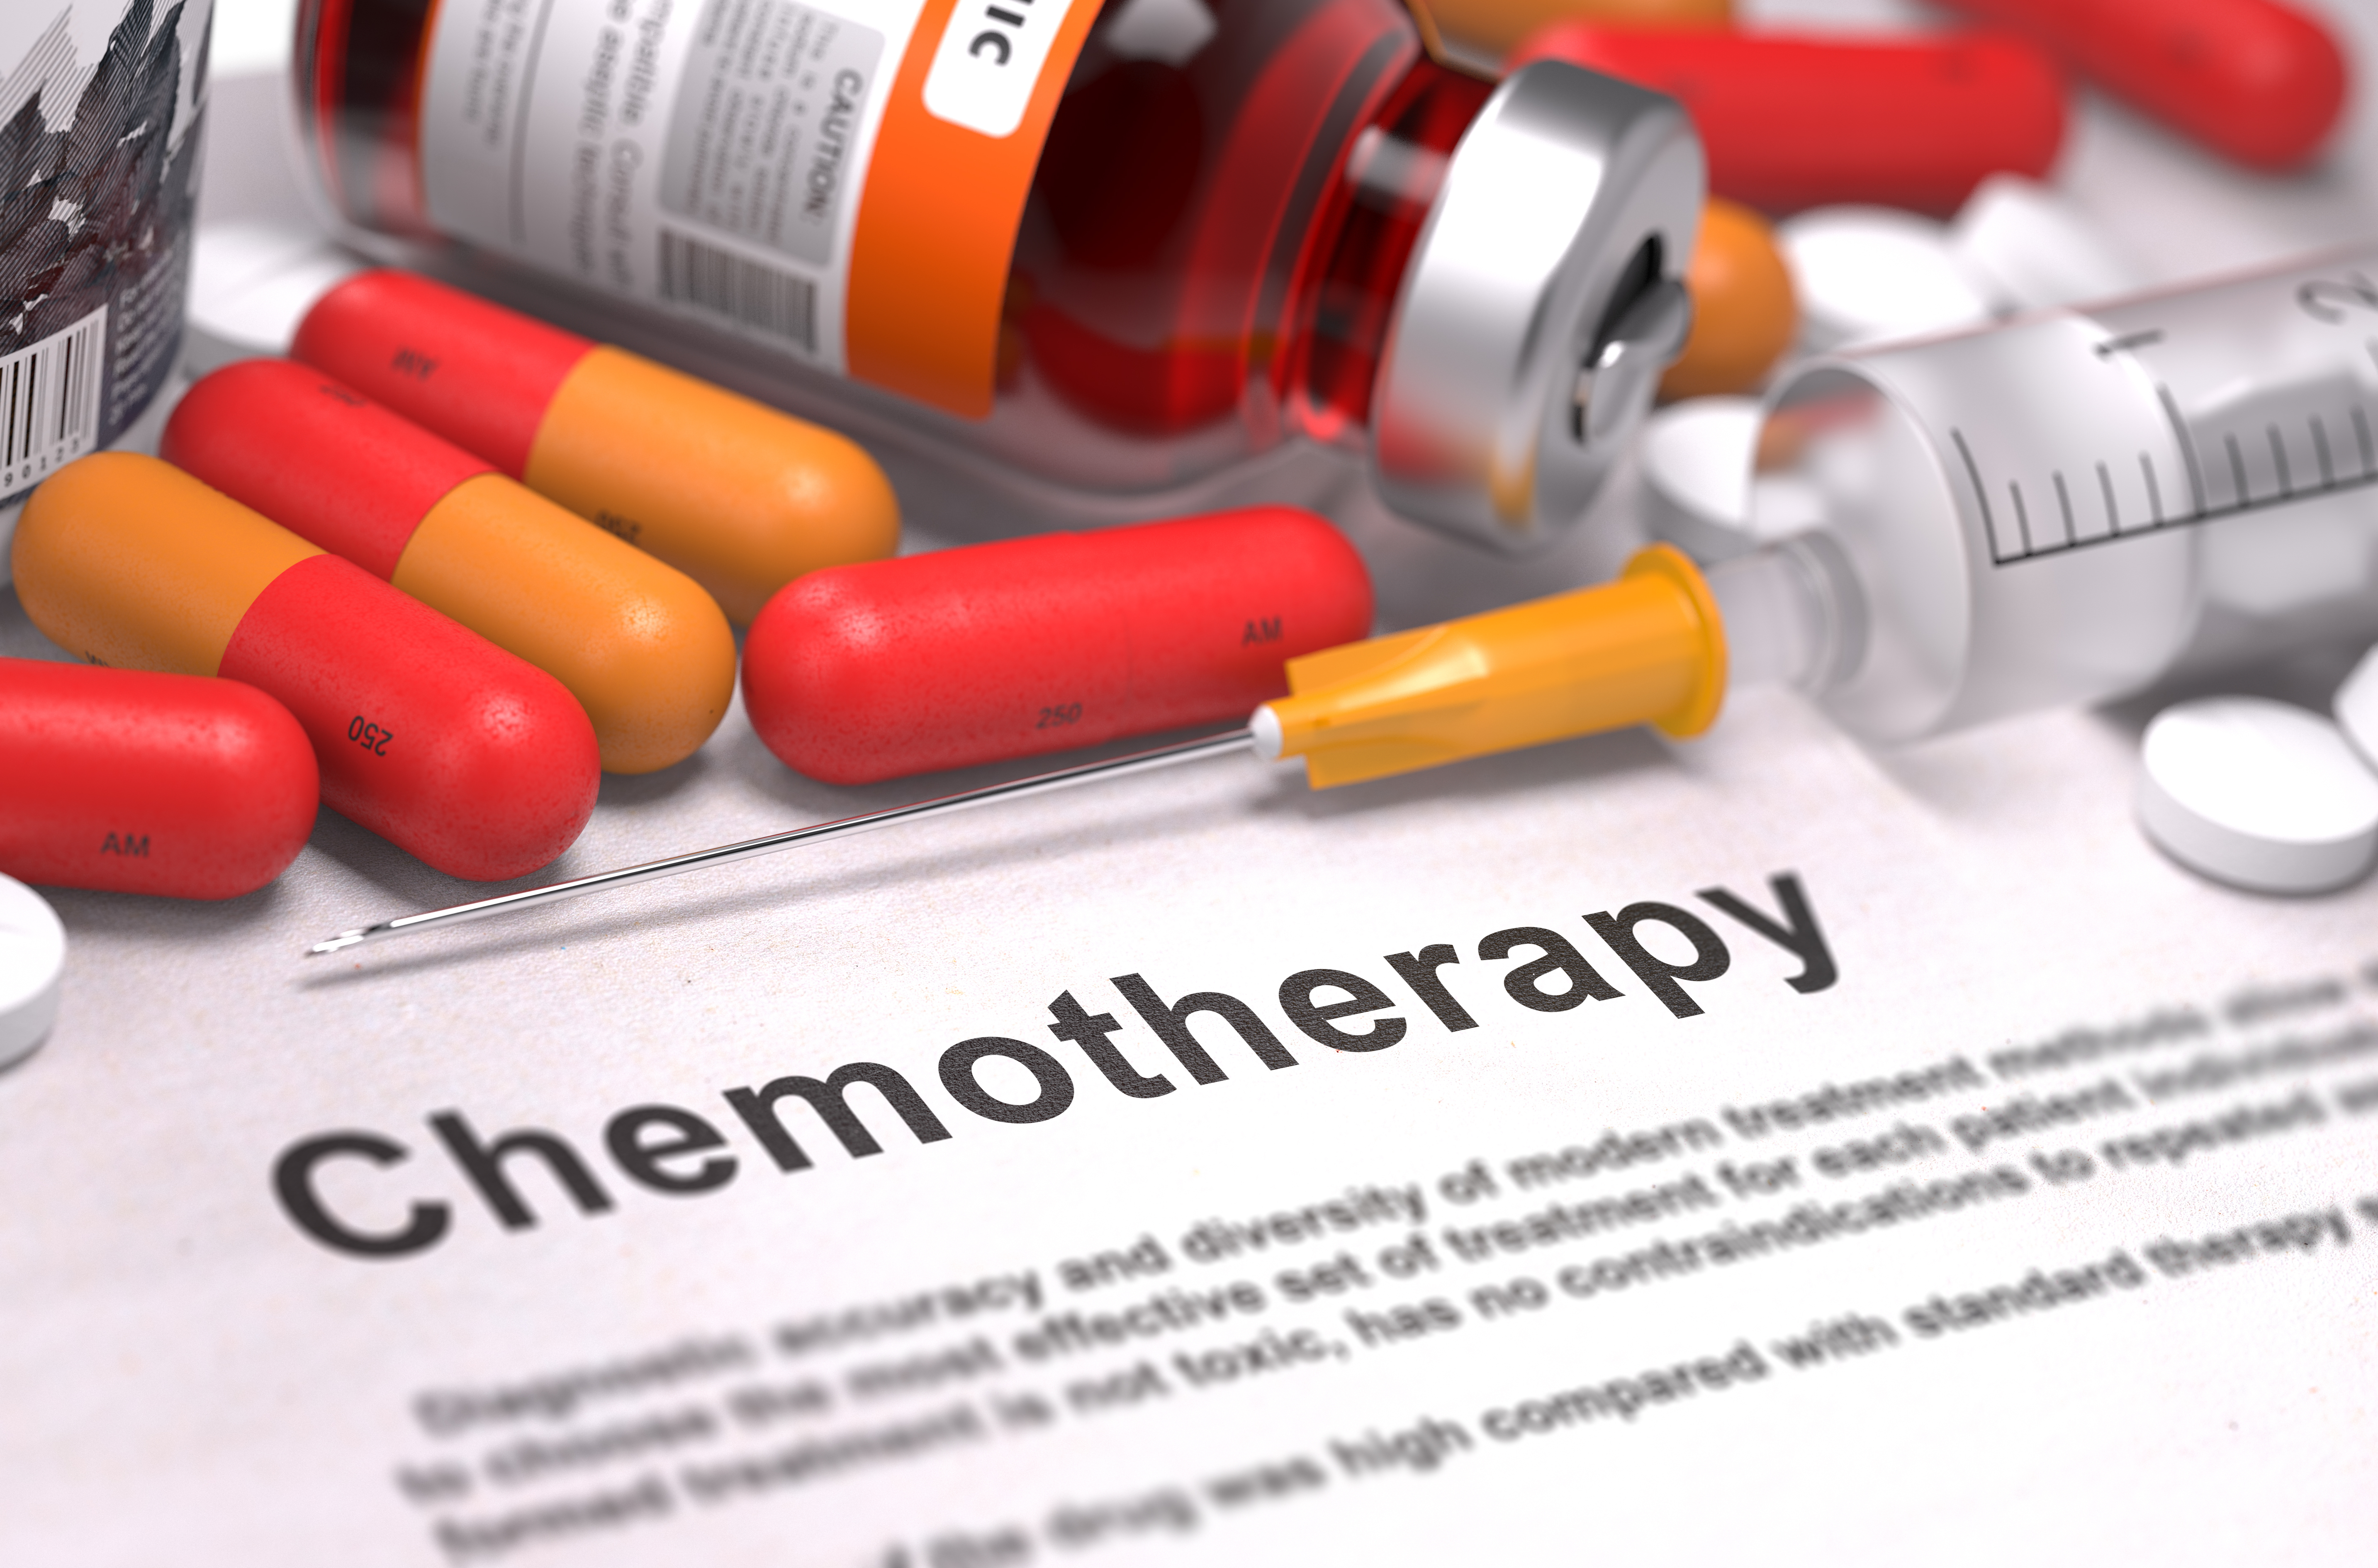 Chemotherapy and cancer drugs